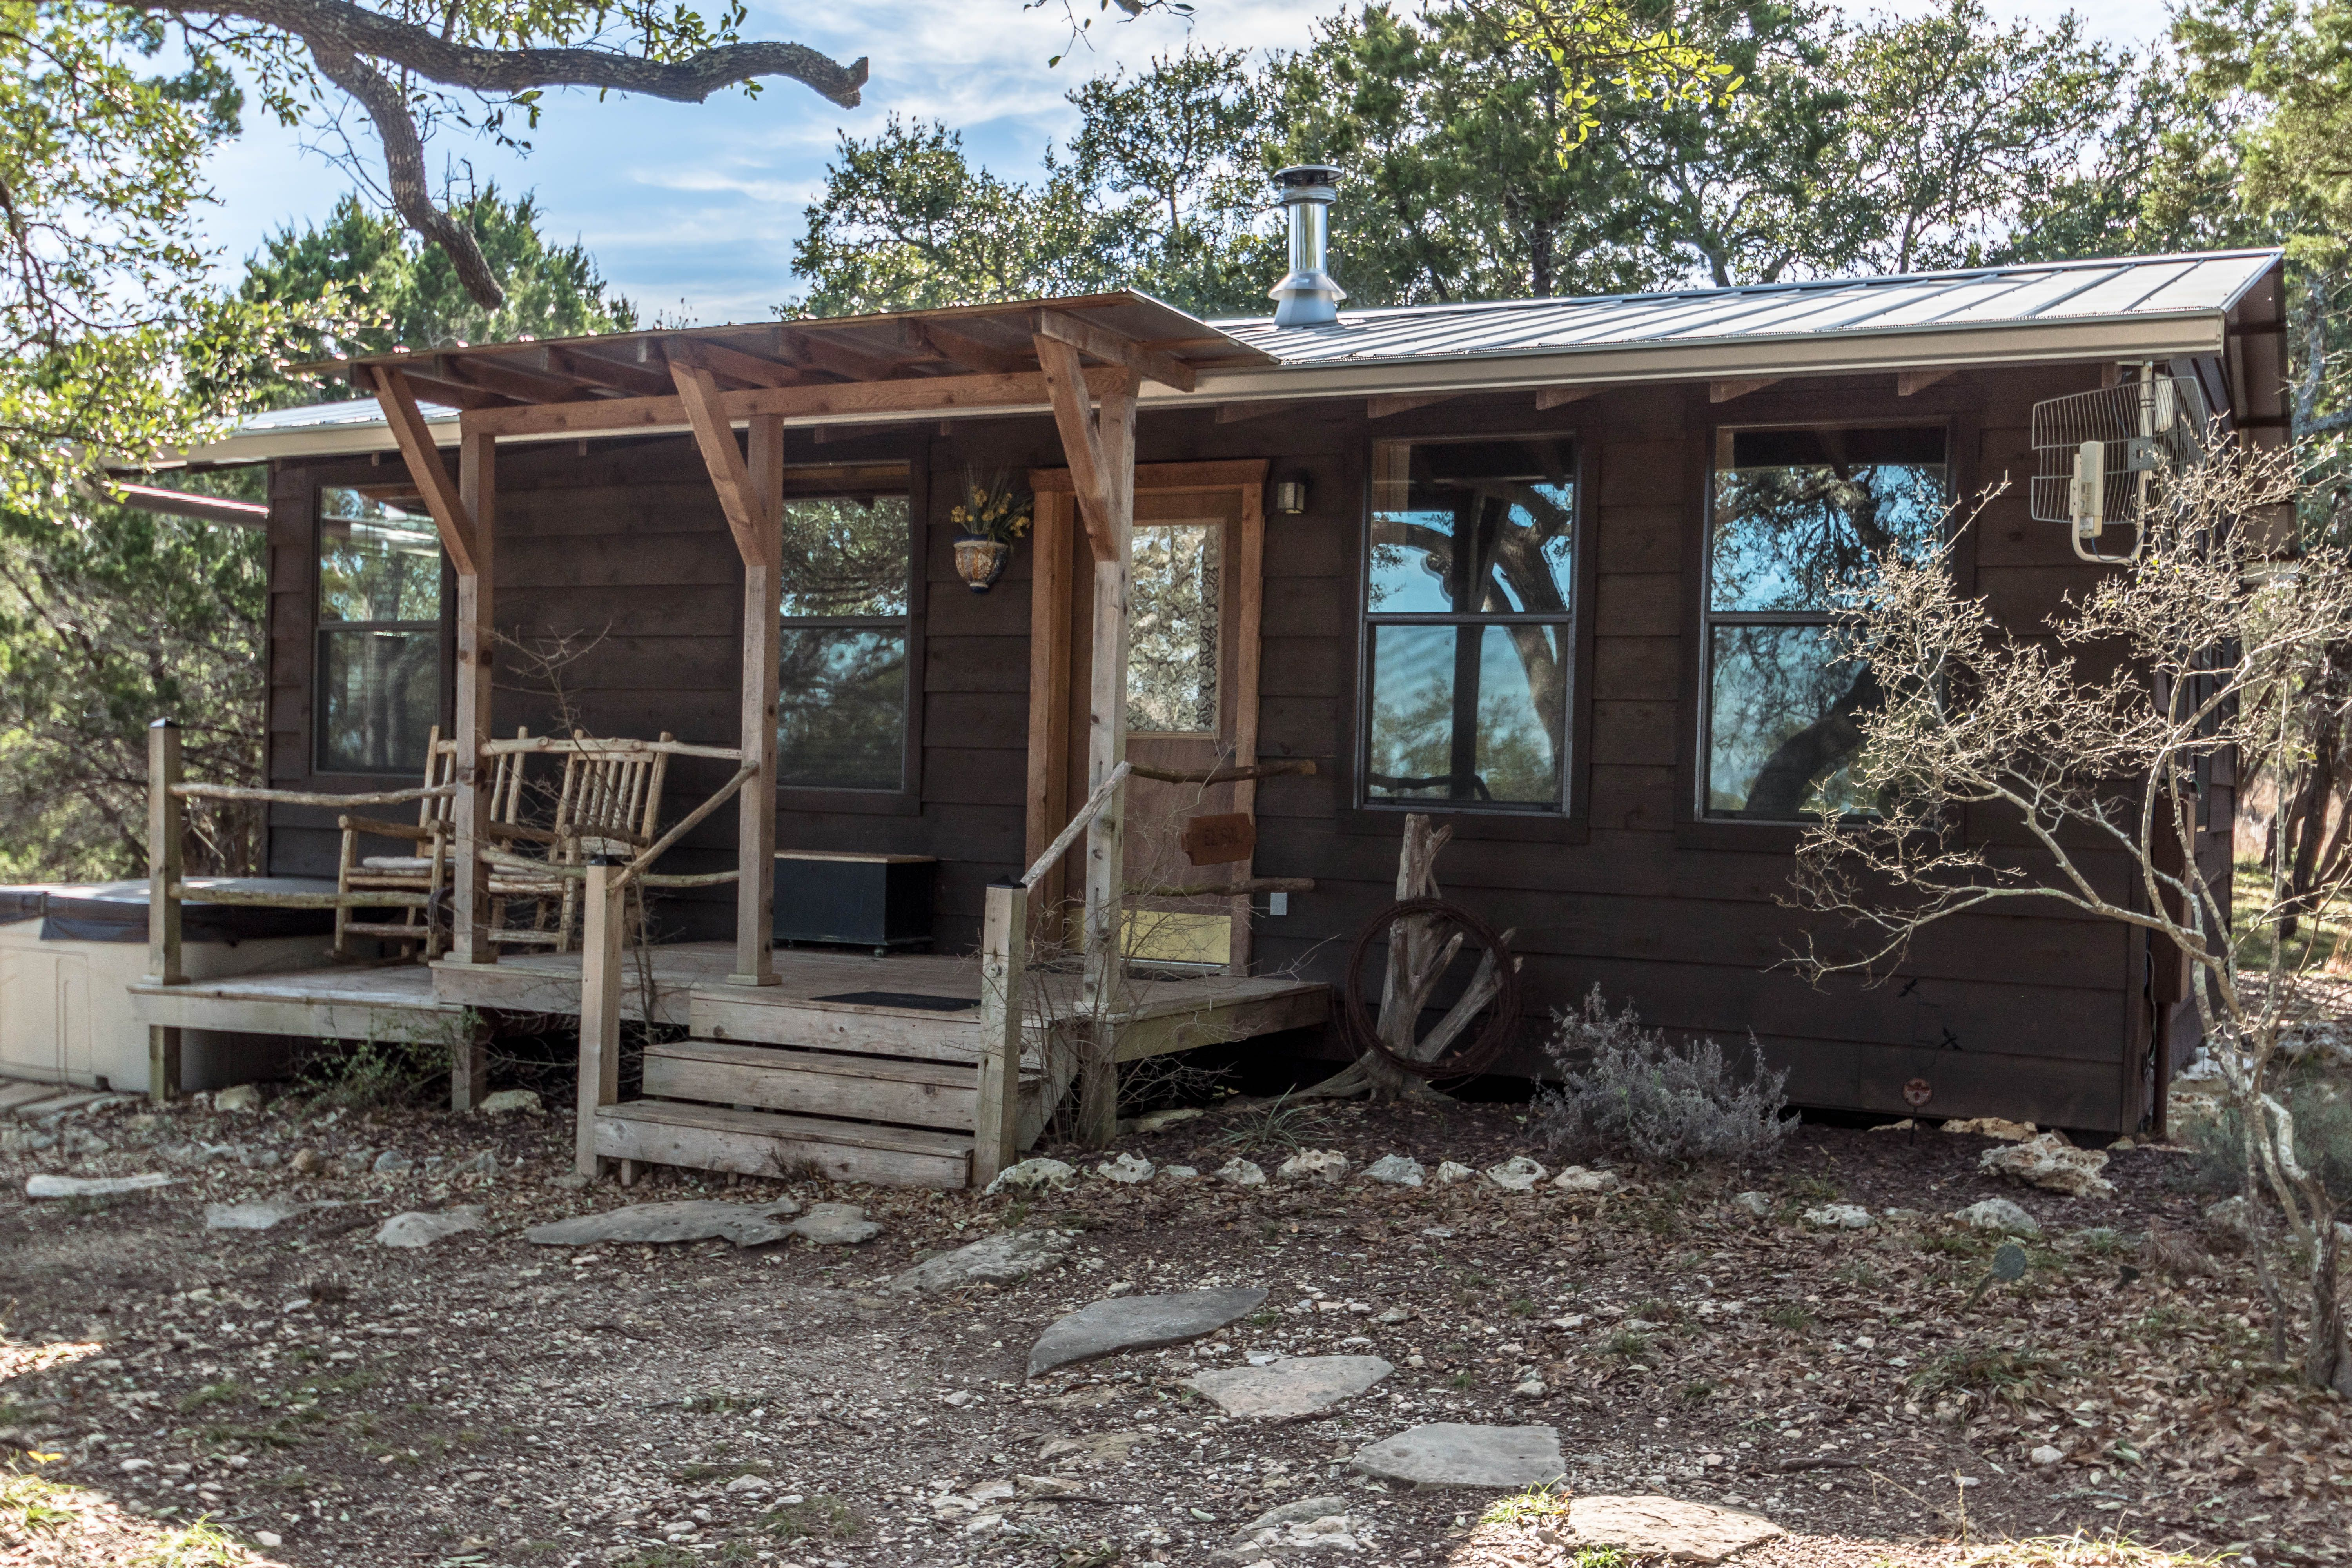 del front and the for secluded frio area river posada img spectacular cabins private rent views on